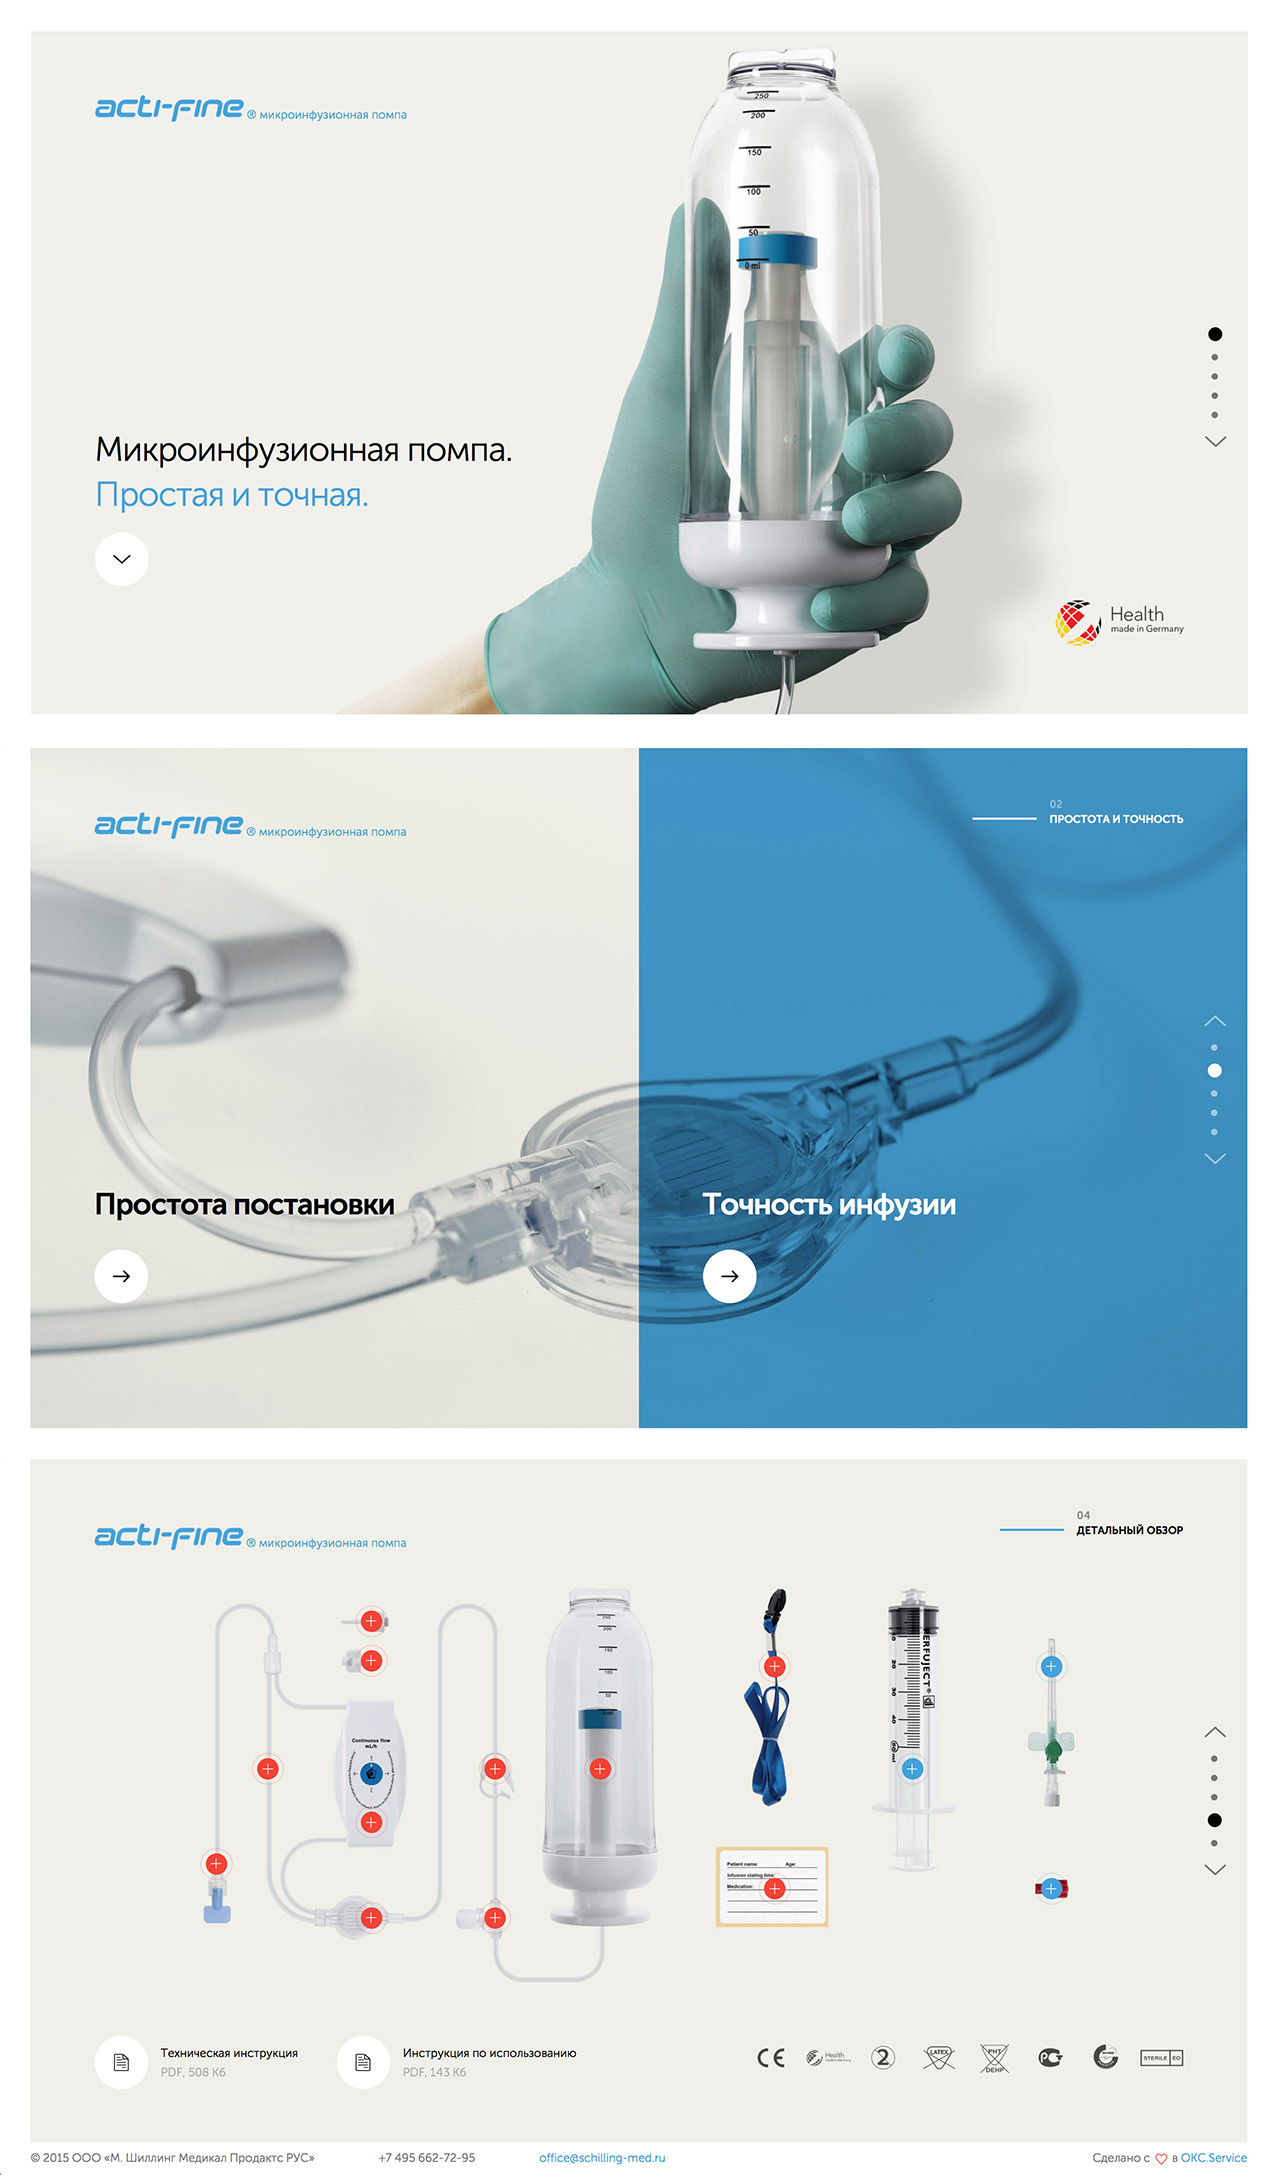 Acti-fine Microinfusion Pump Website Screenshot